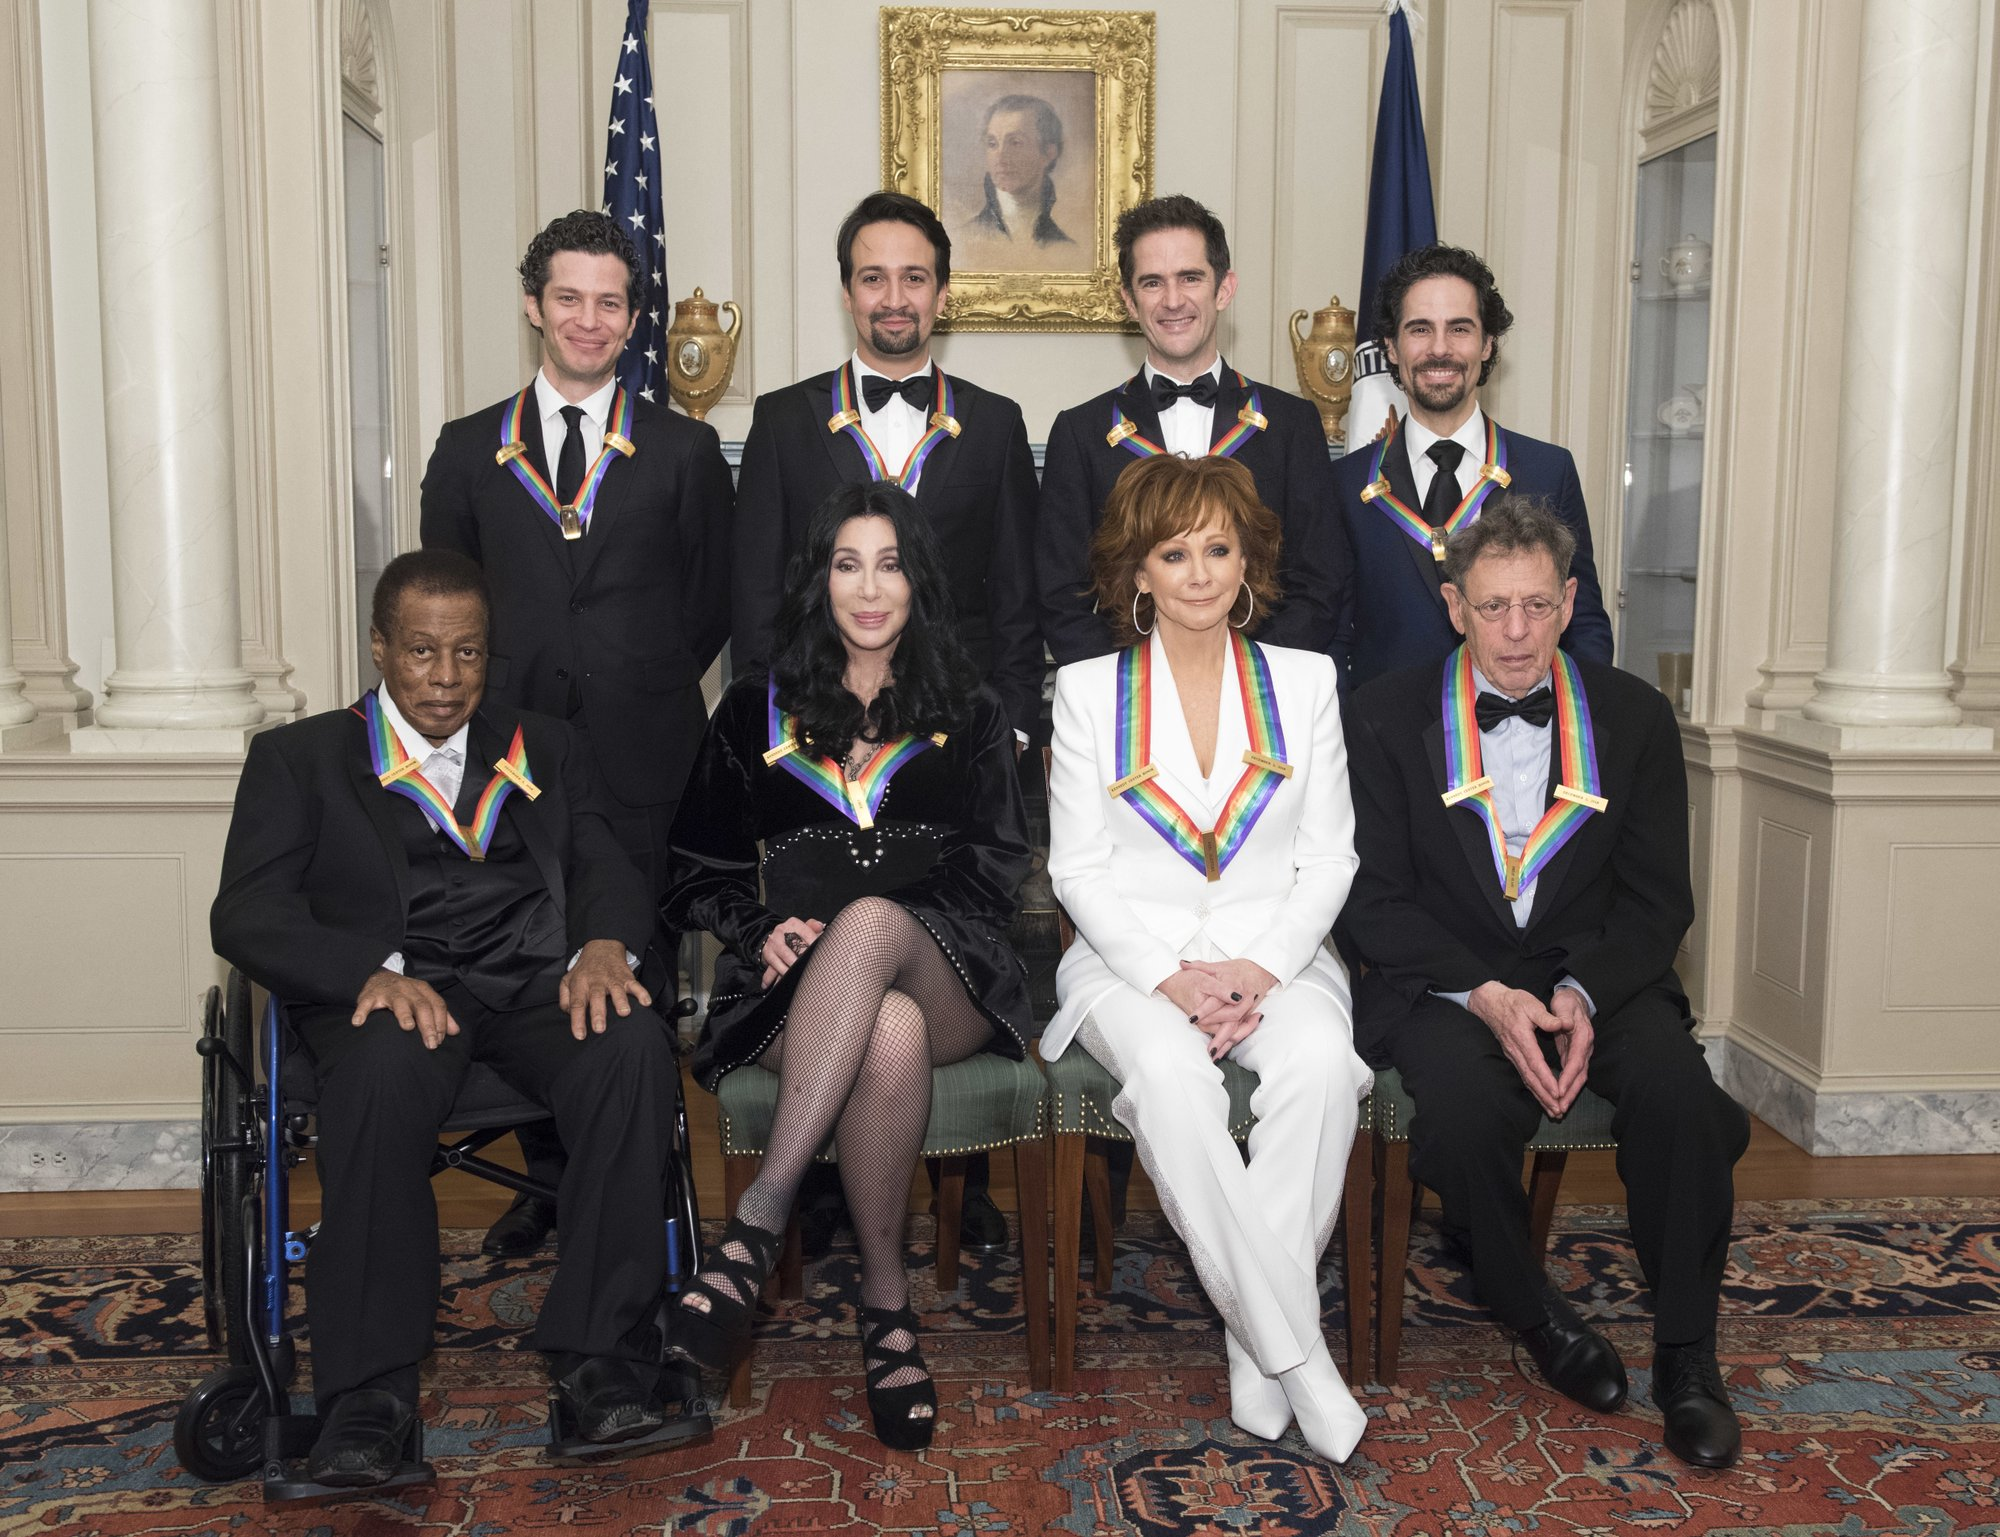 Bush gets tributes at Kennedy Center Honors program